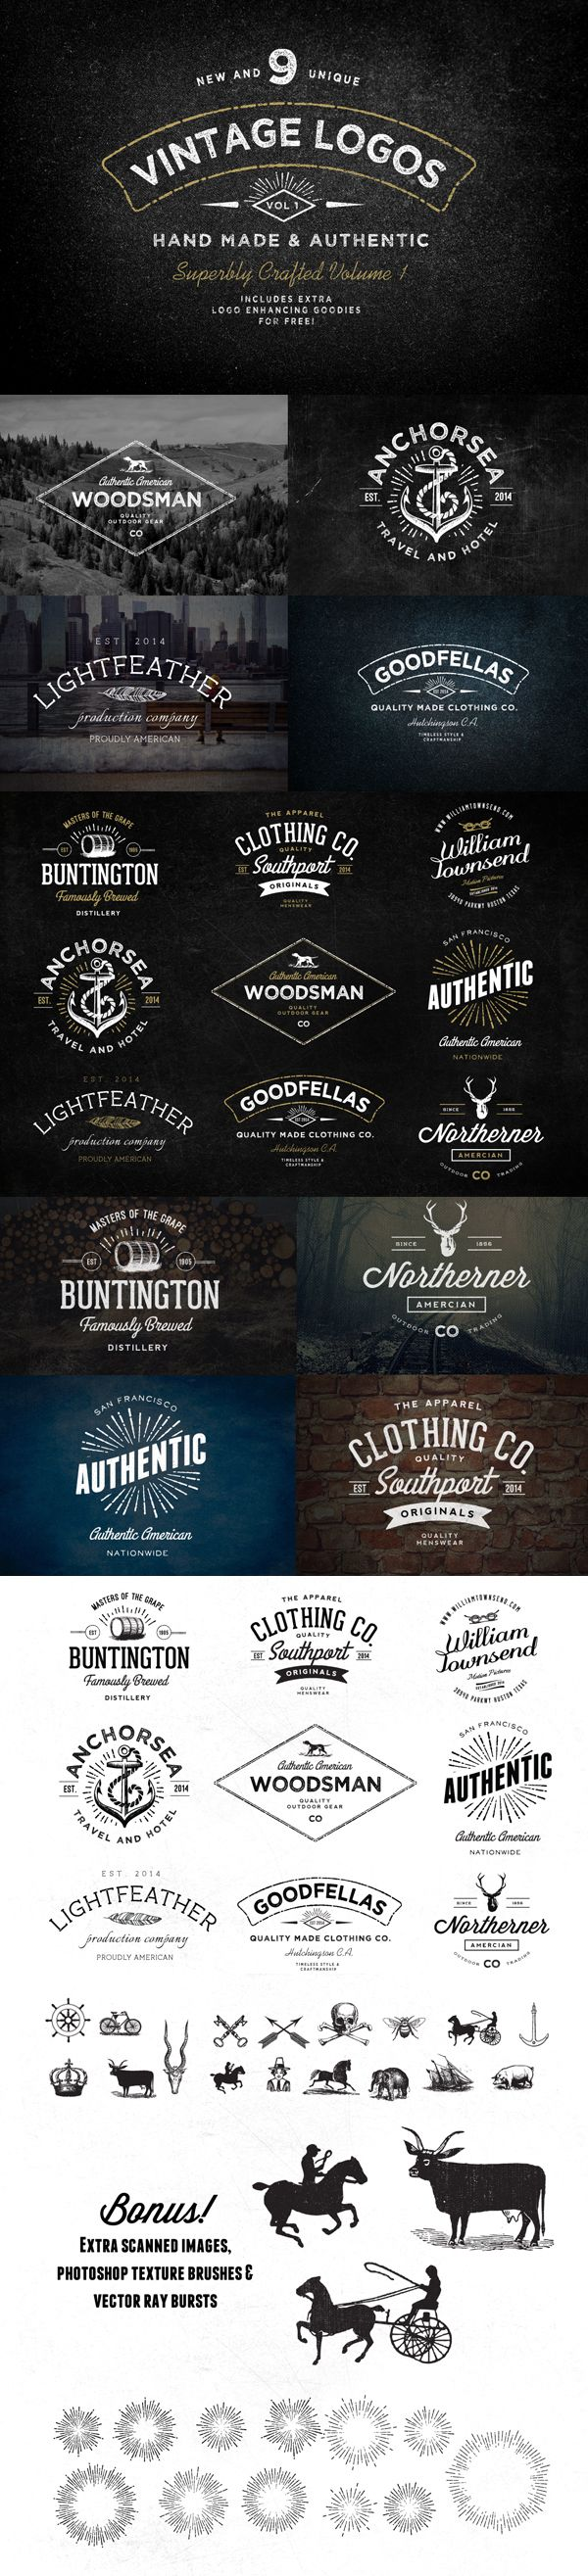 Vintage Logo Bundle Vol.1 on Behance